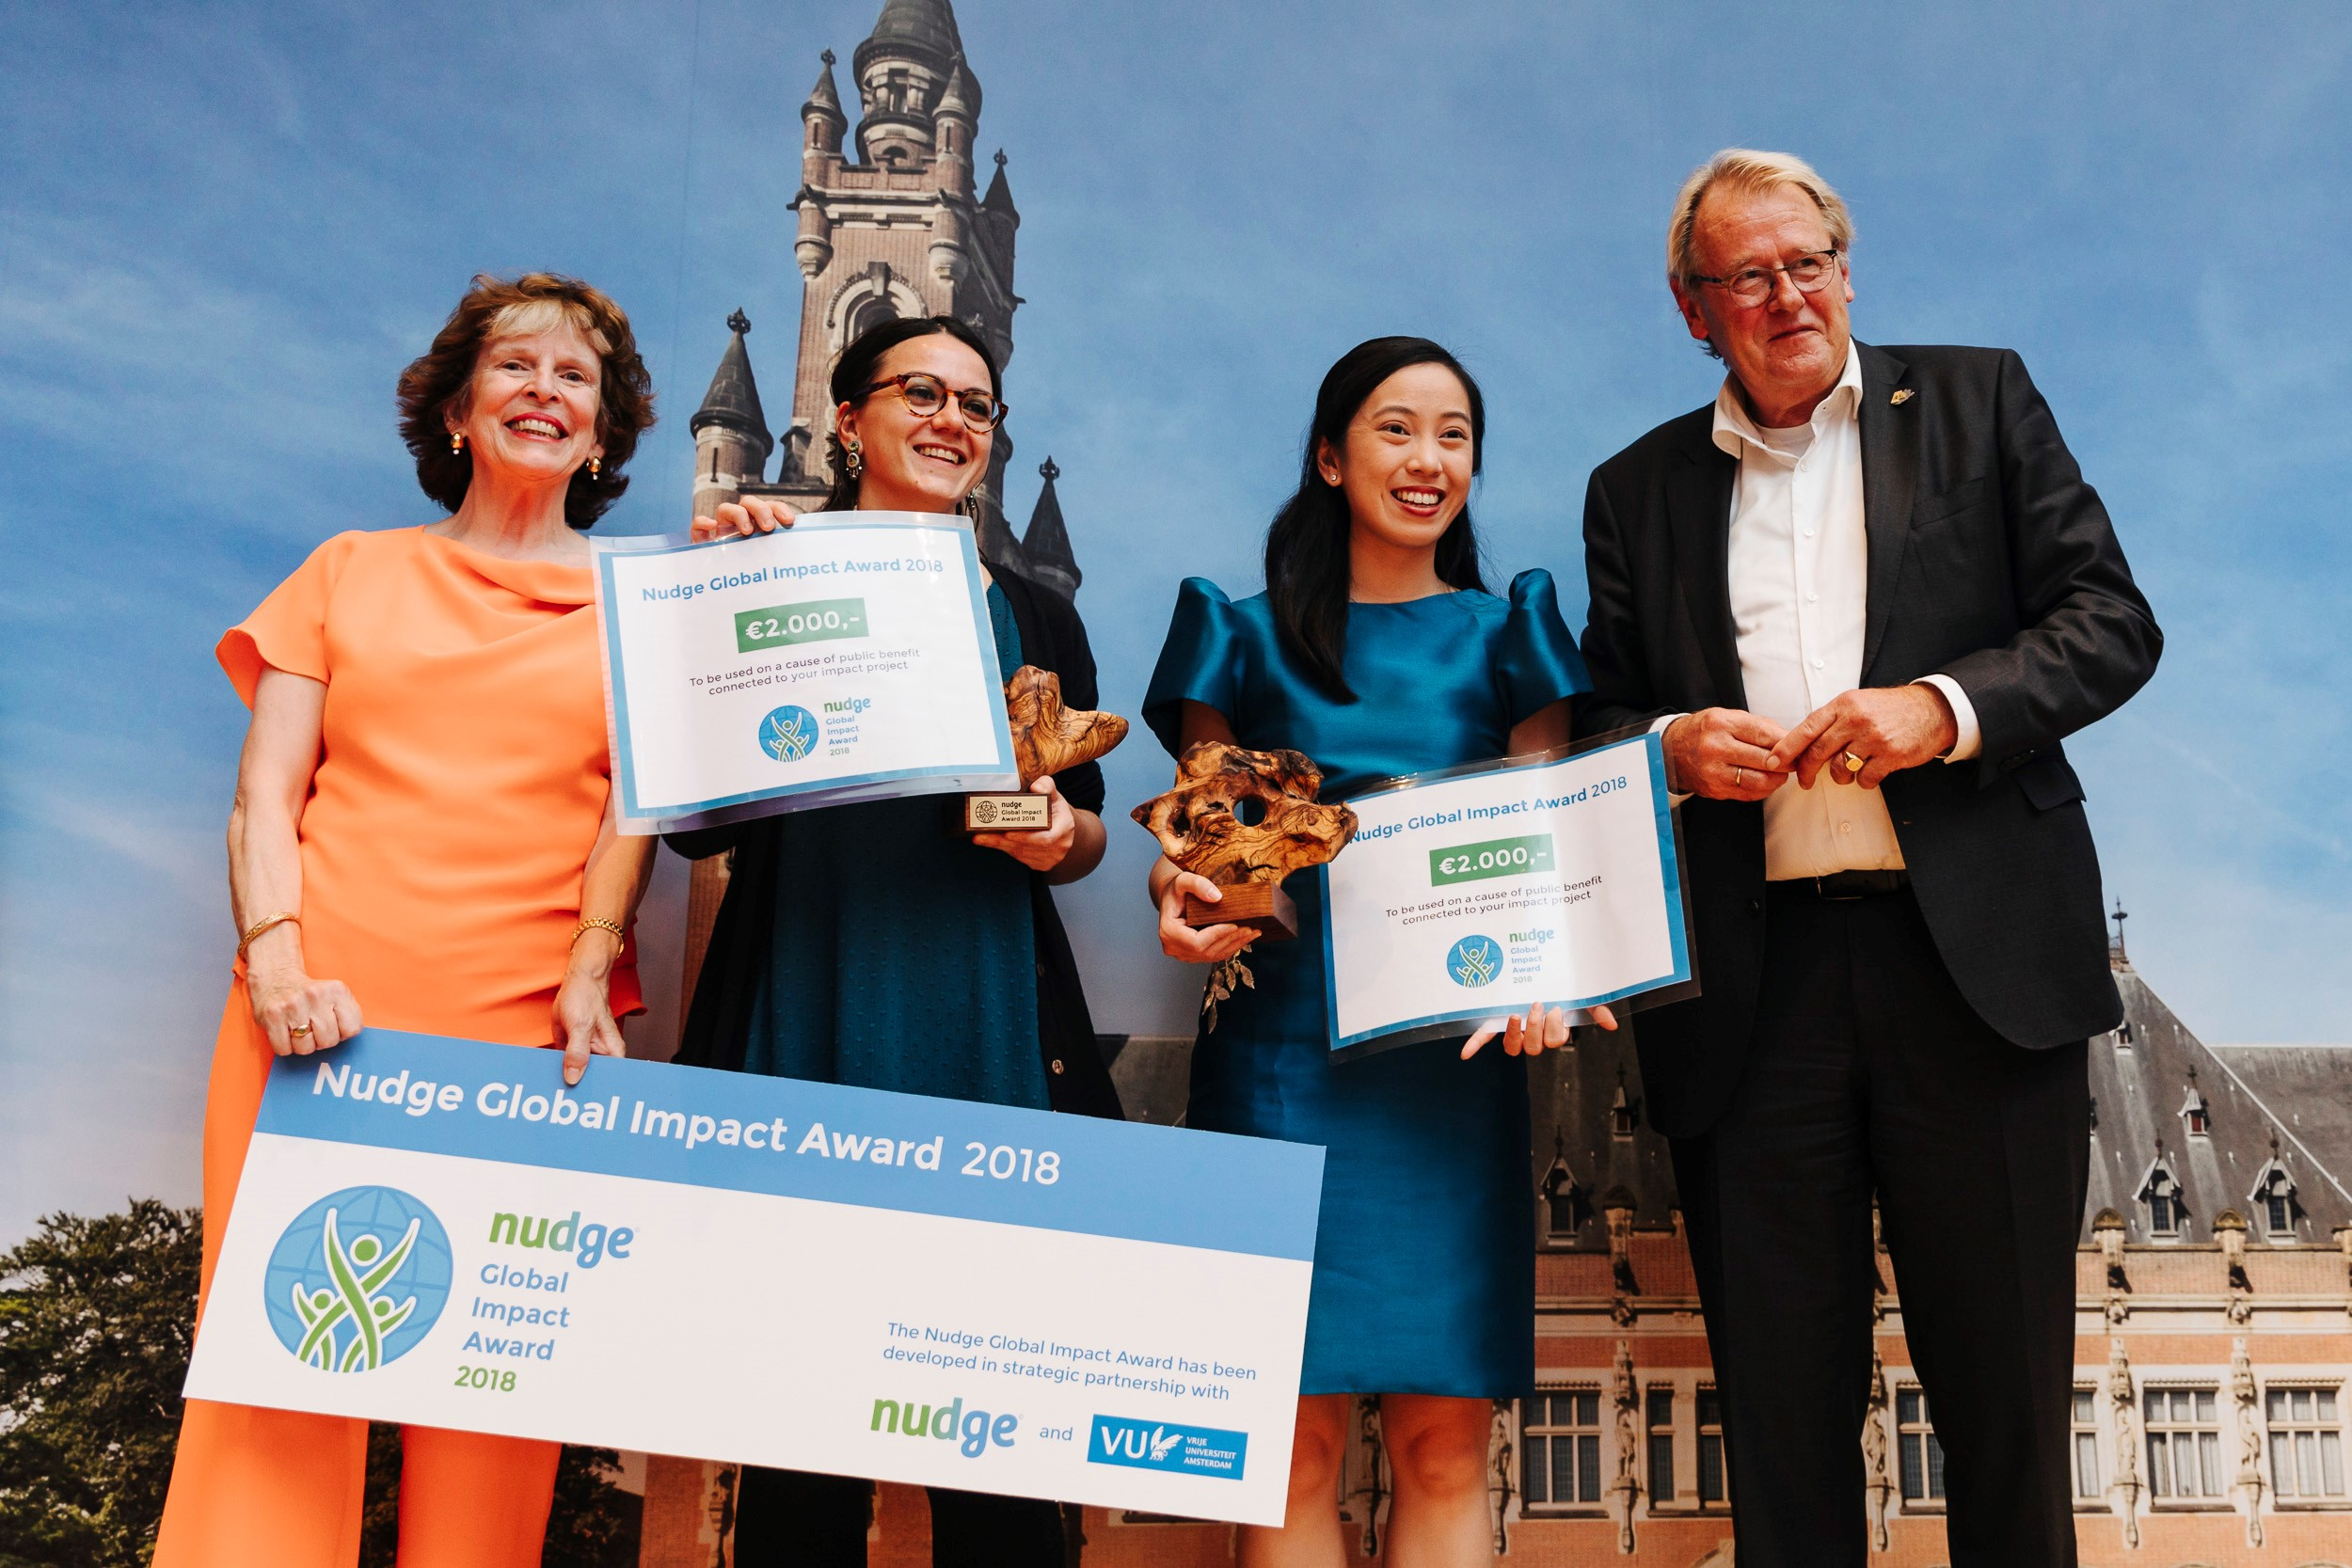 Anacelle Layug (2nd from right) accepts PeoplePods' Nudge Global Impact Award 2018 during the Nudge Global Summit in The Hague